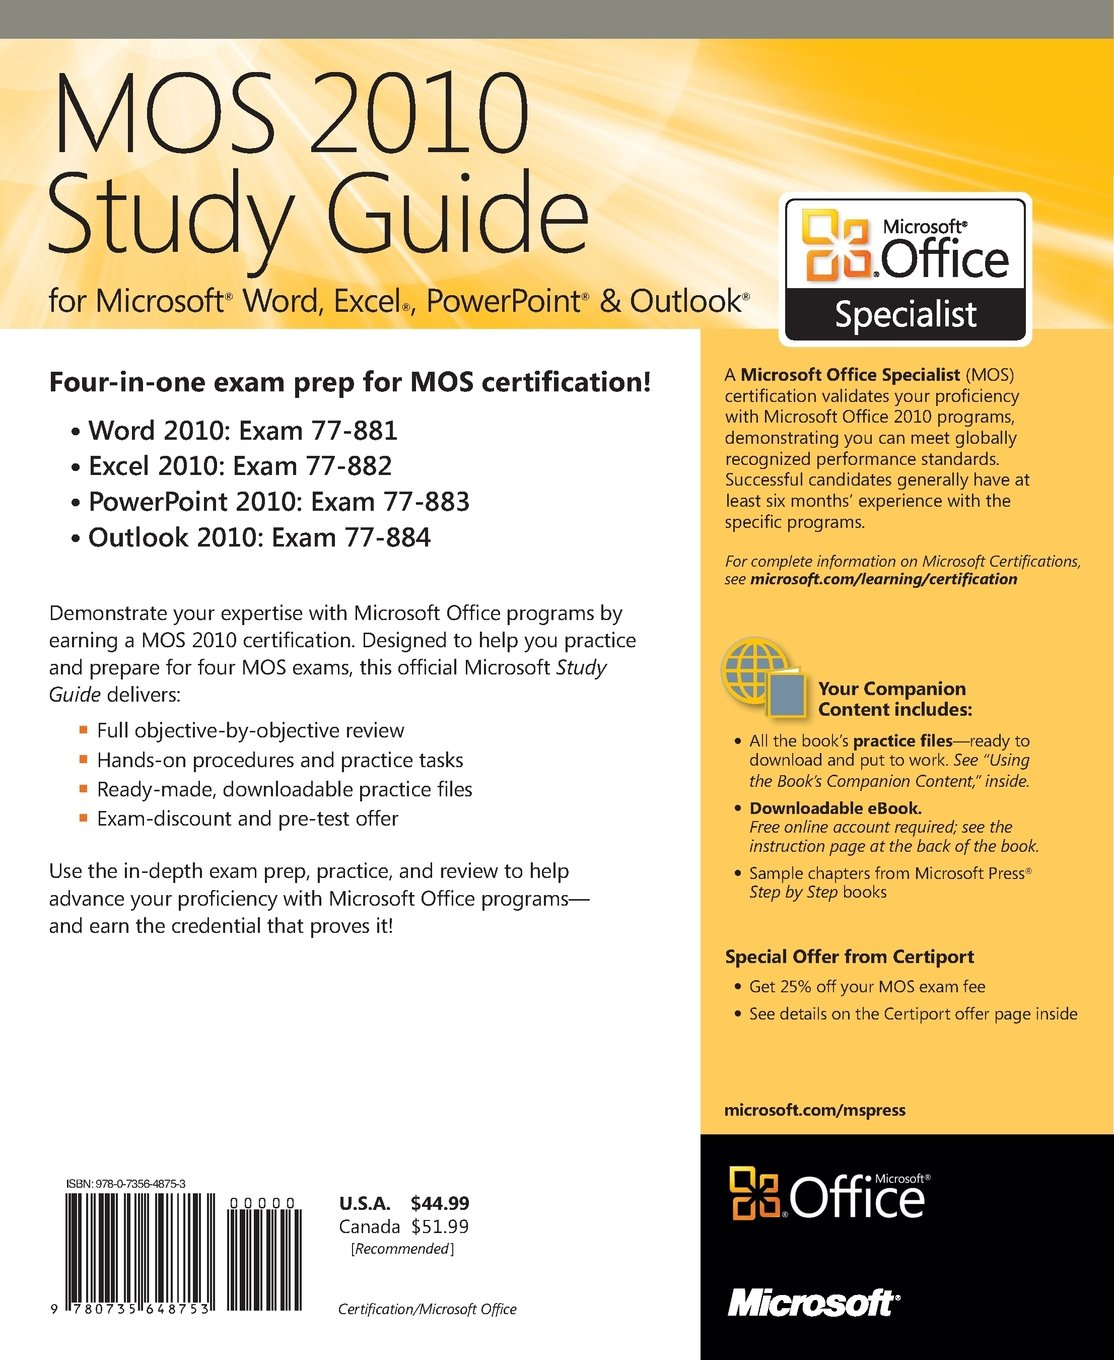 Mos 2010 study guide for microsoft word excel powerpoint and mos 2010 study guide for microsoft word excel powerpoint and outlook exams joan lambert joyce cox 0783324831665 books amazon xflitez Image collections